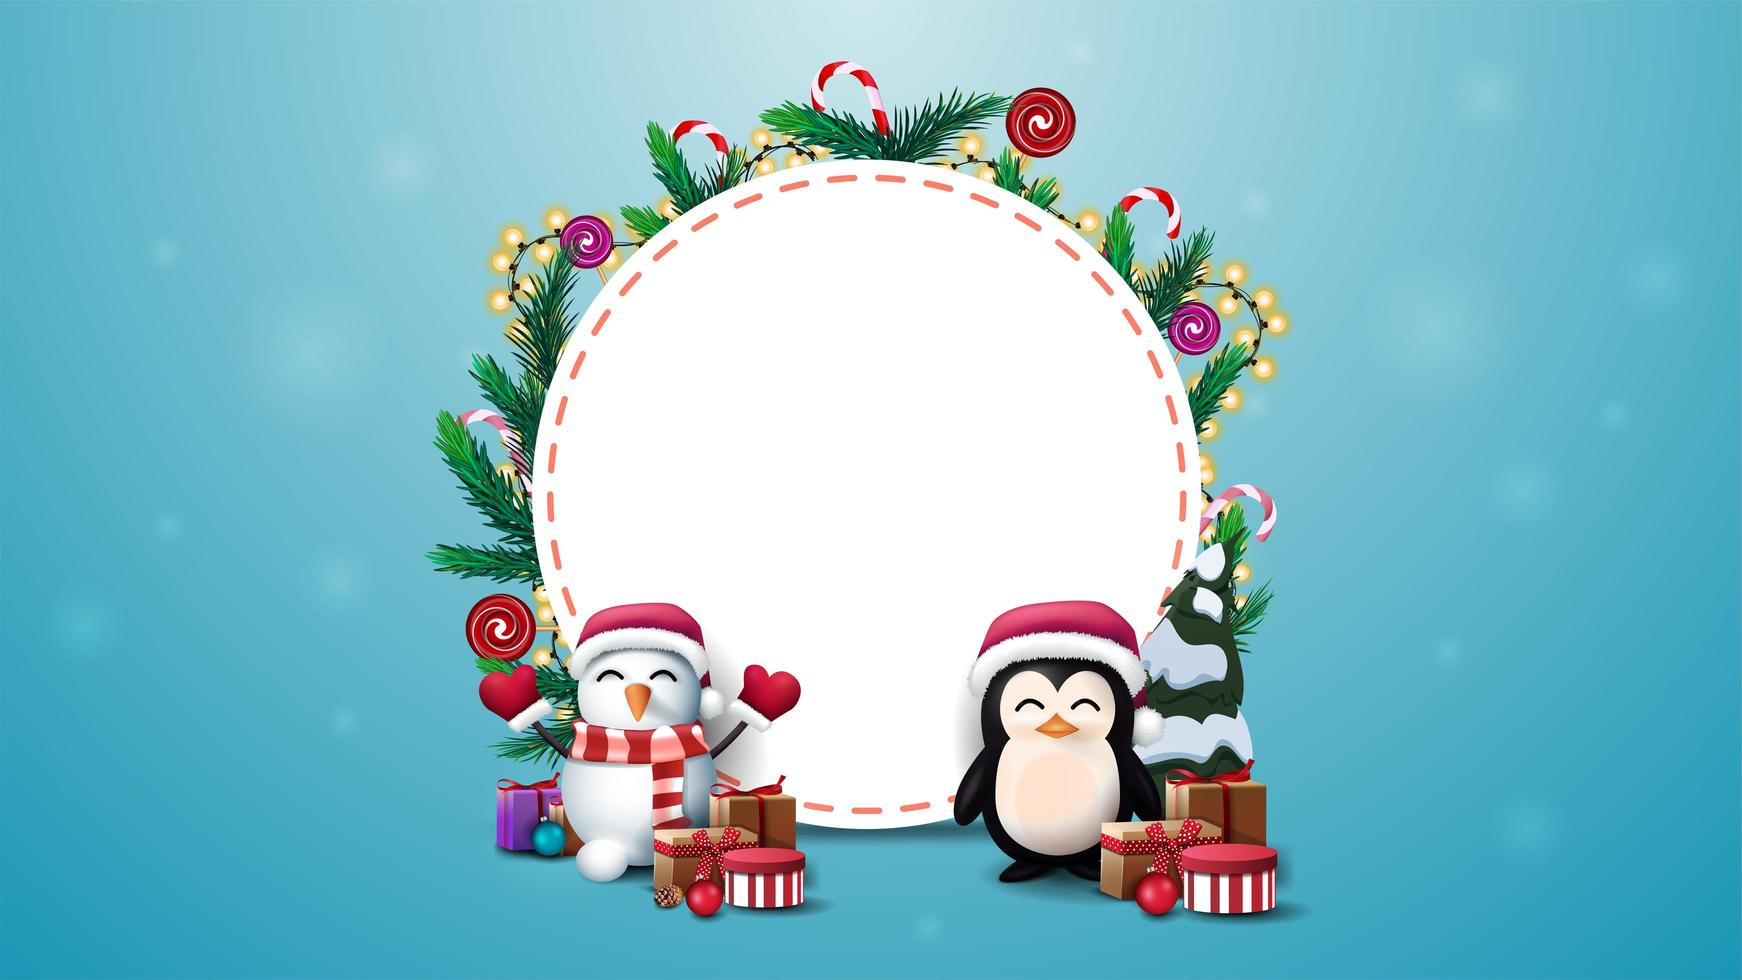 Blank round Christmas template for your text decorated with Christmas tree branches, candies and garlands vector